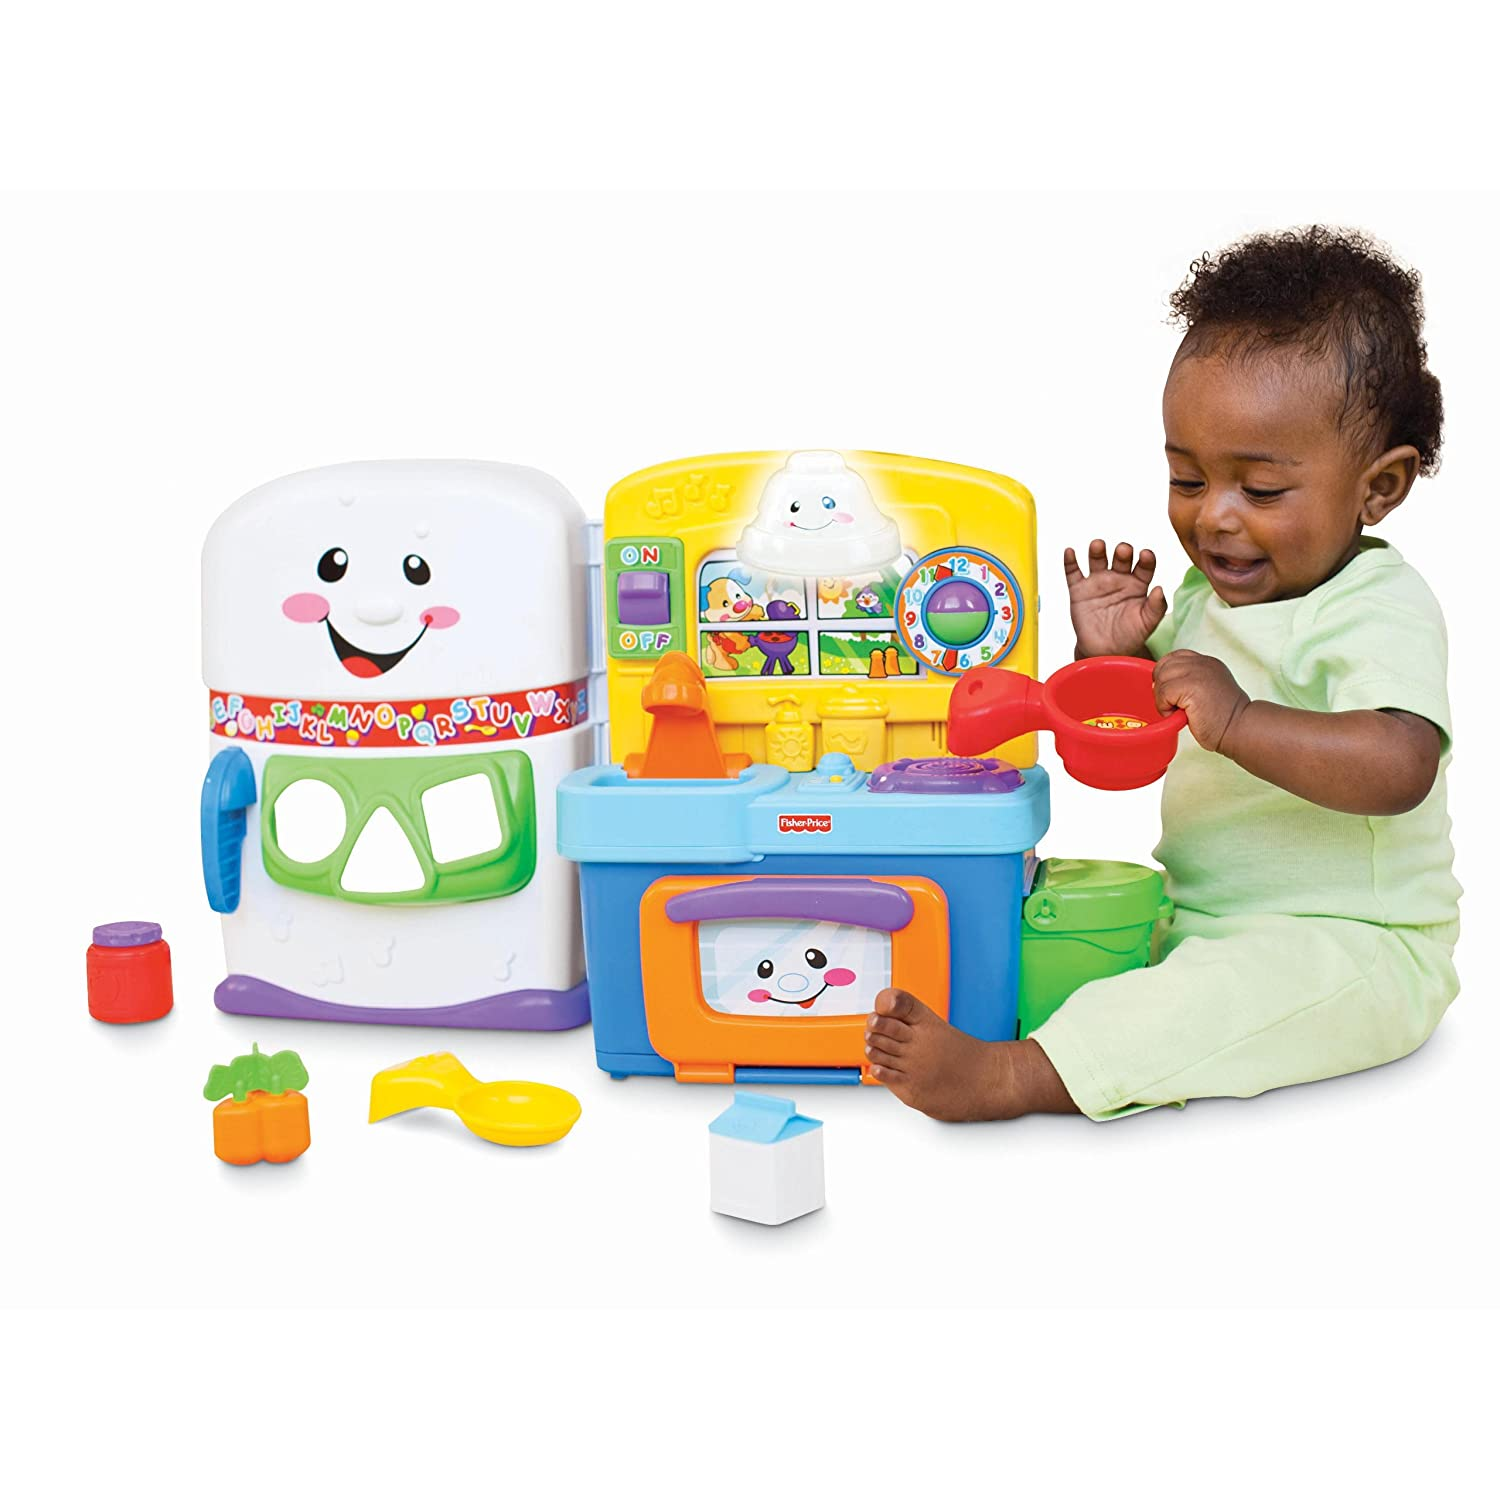 Toys for 1 year old babies for Kitchen set for 9 year old